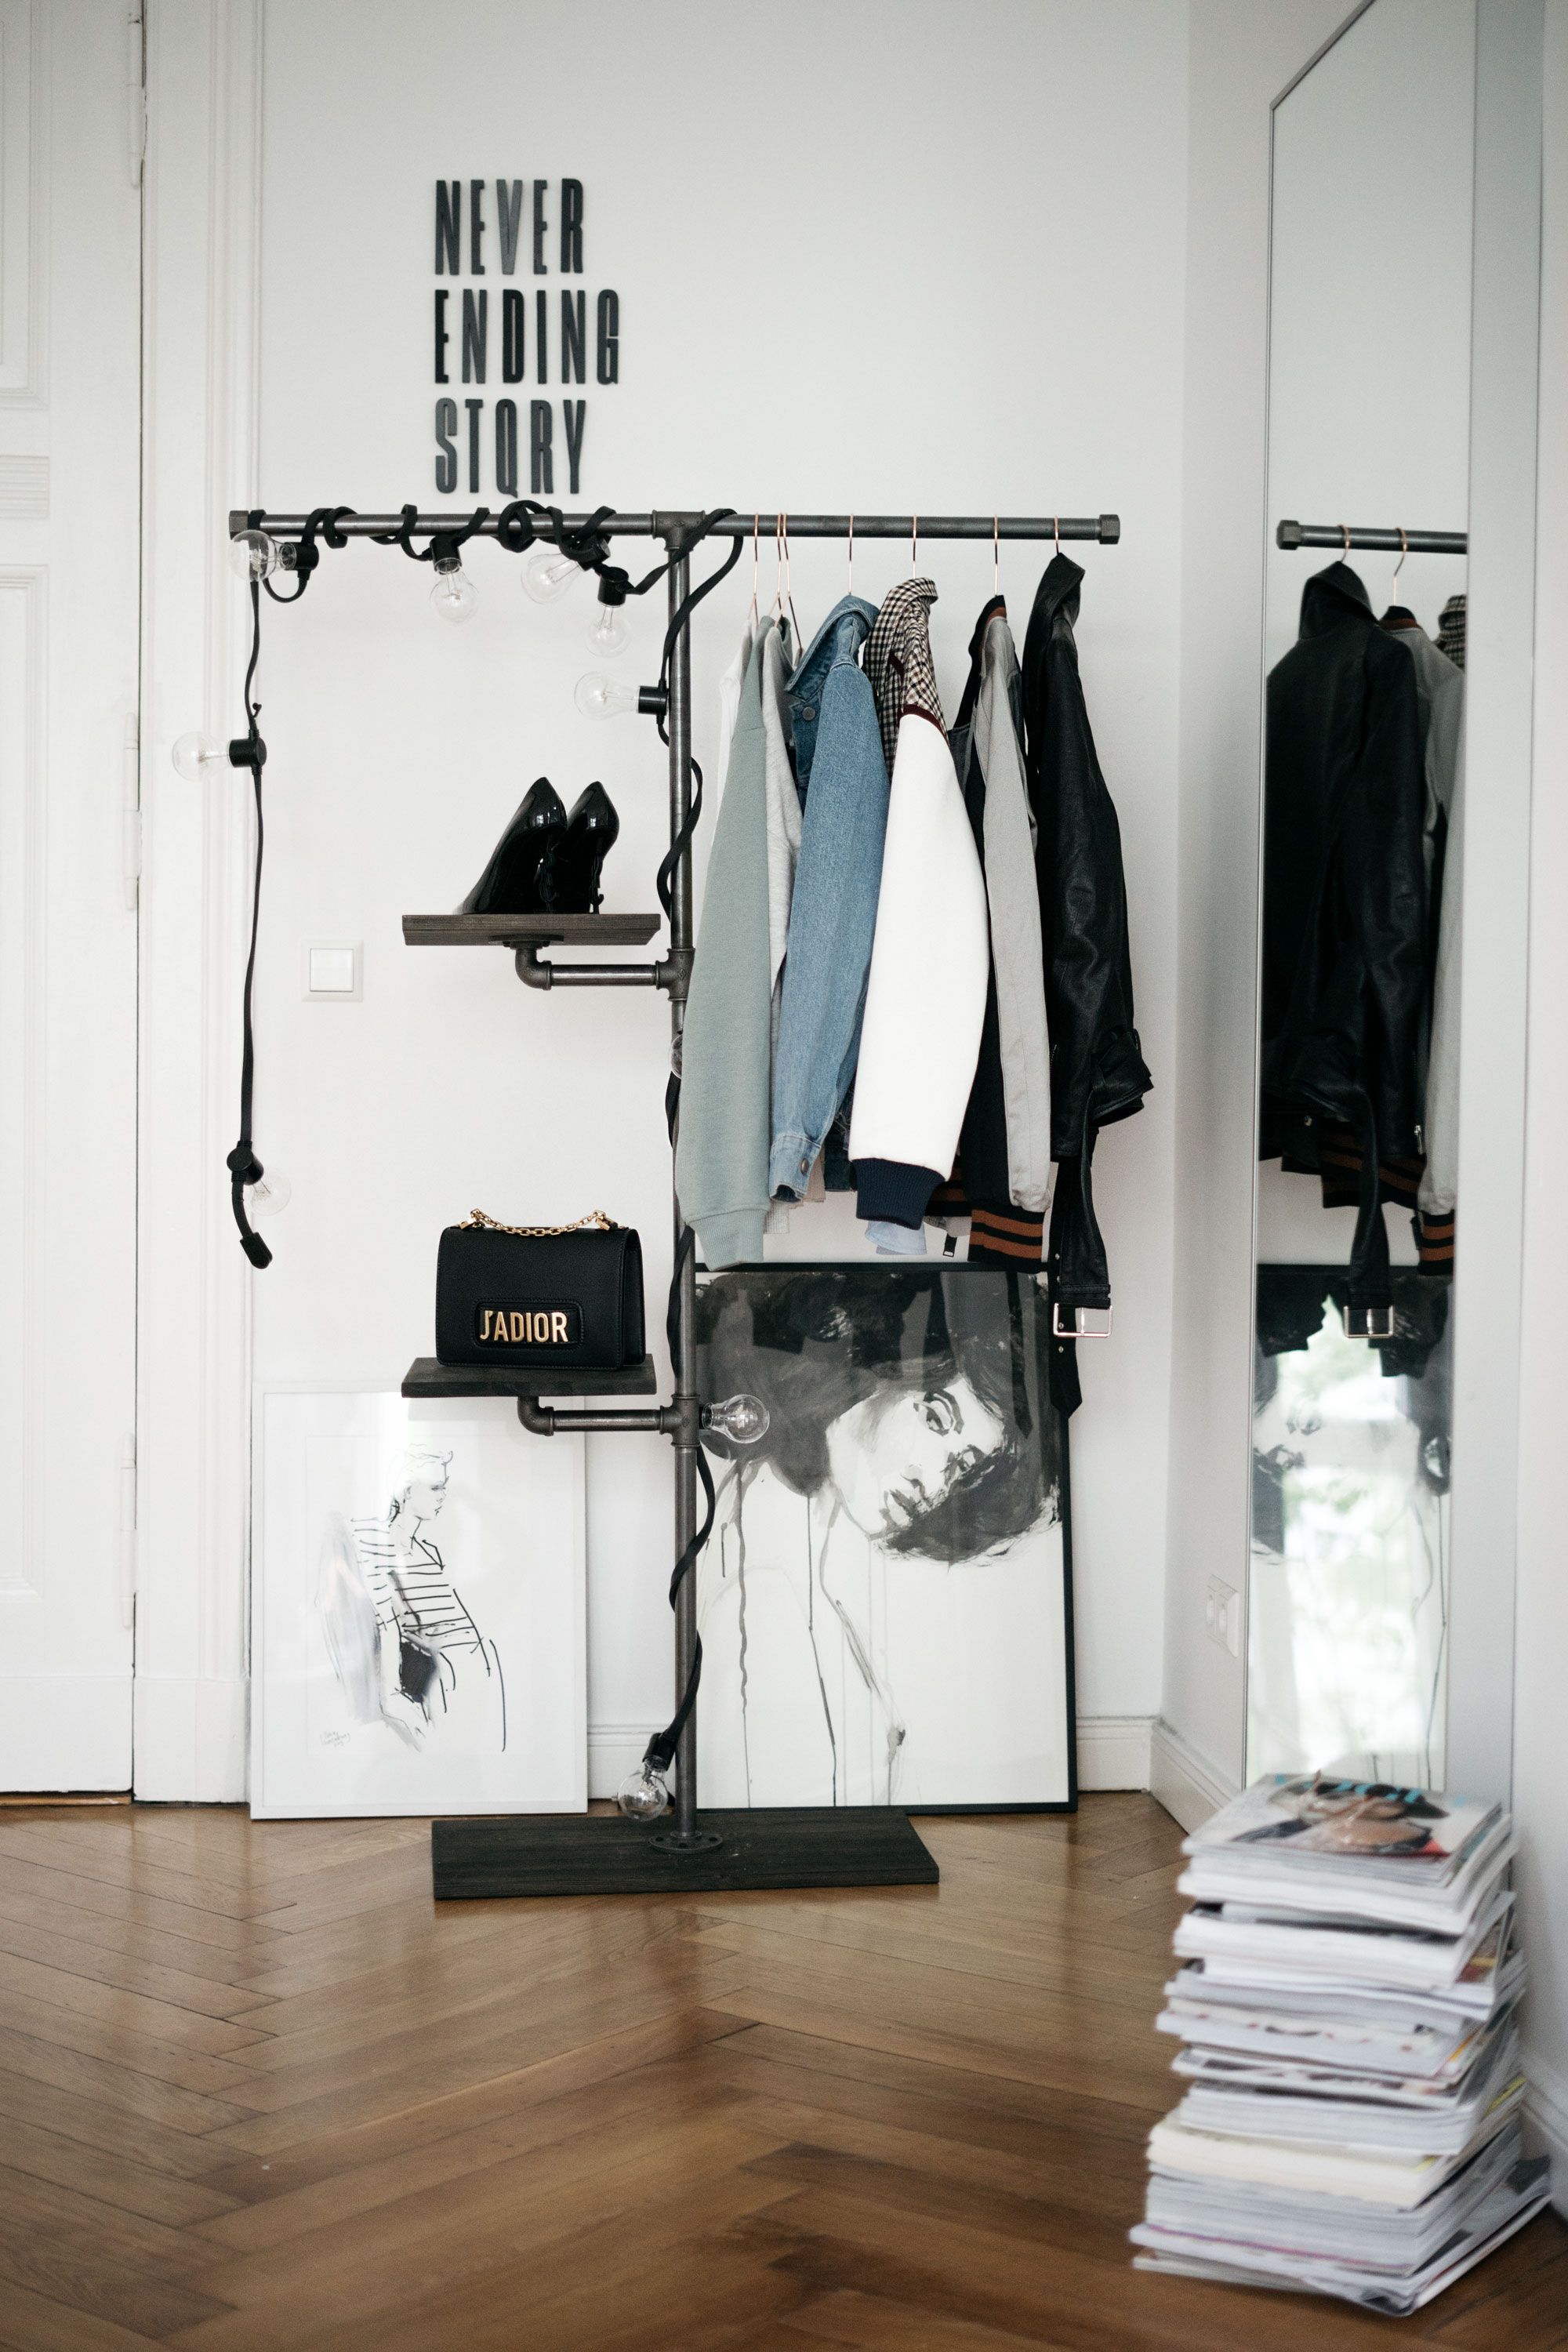 Schrank Sortiersystem 9 Tips For A Tidier Closet Fashion Blog From Germany Modeblog